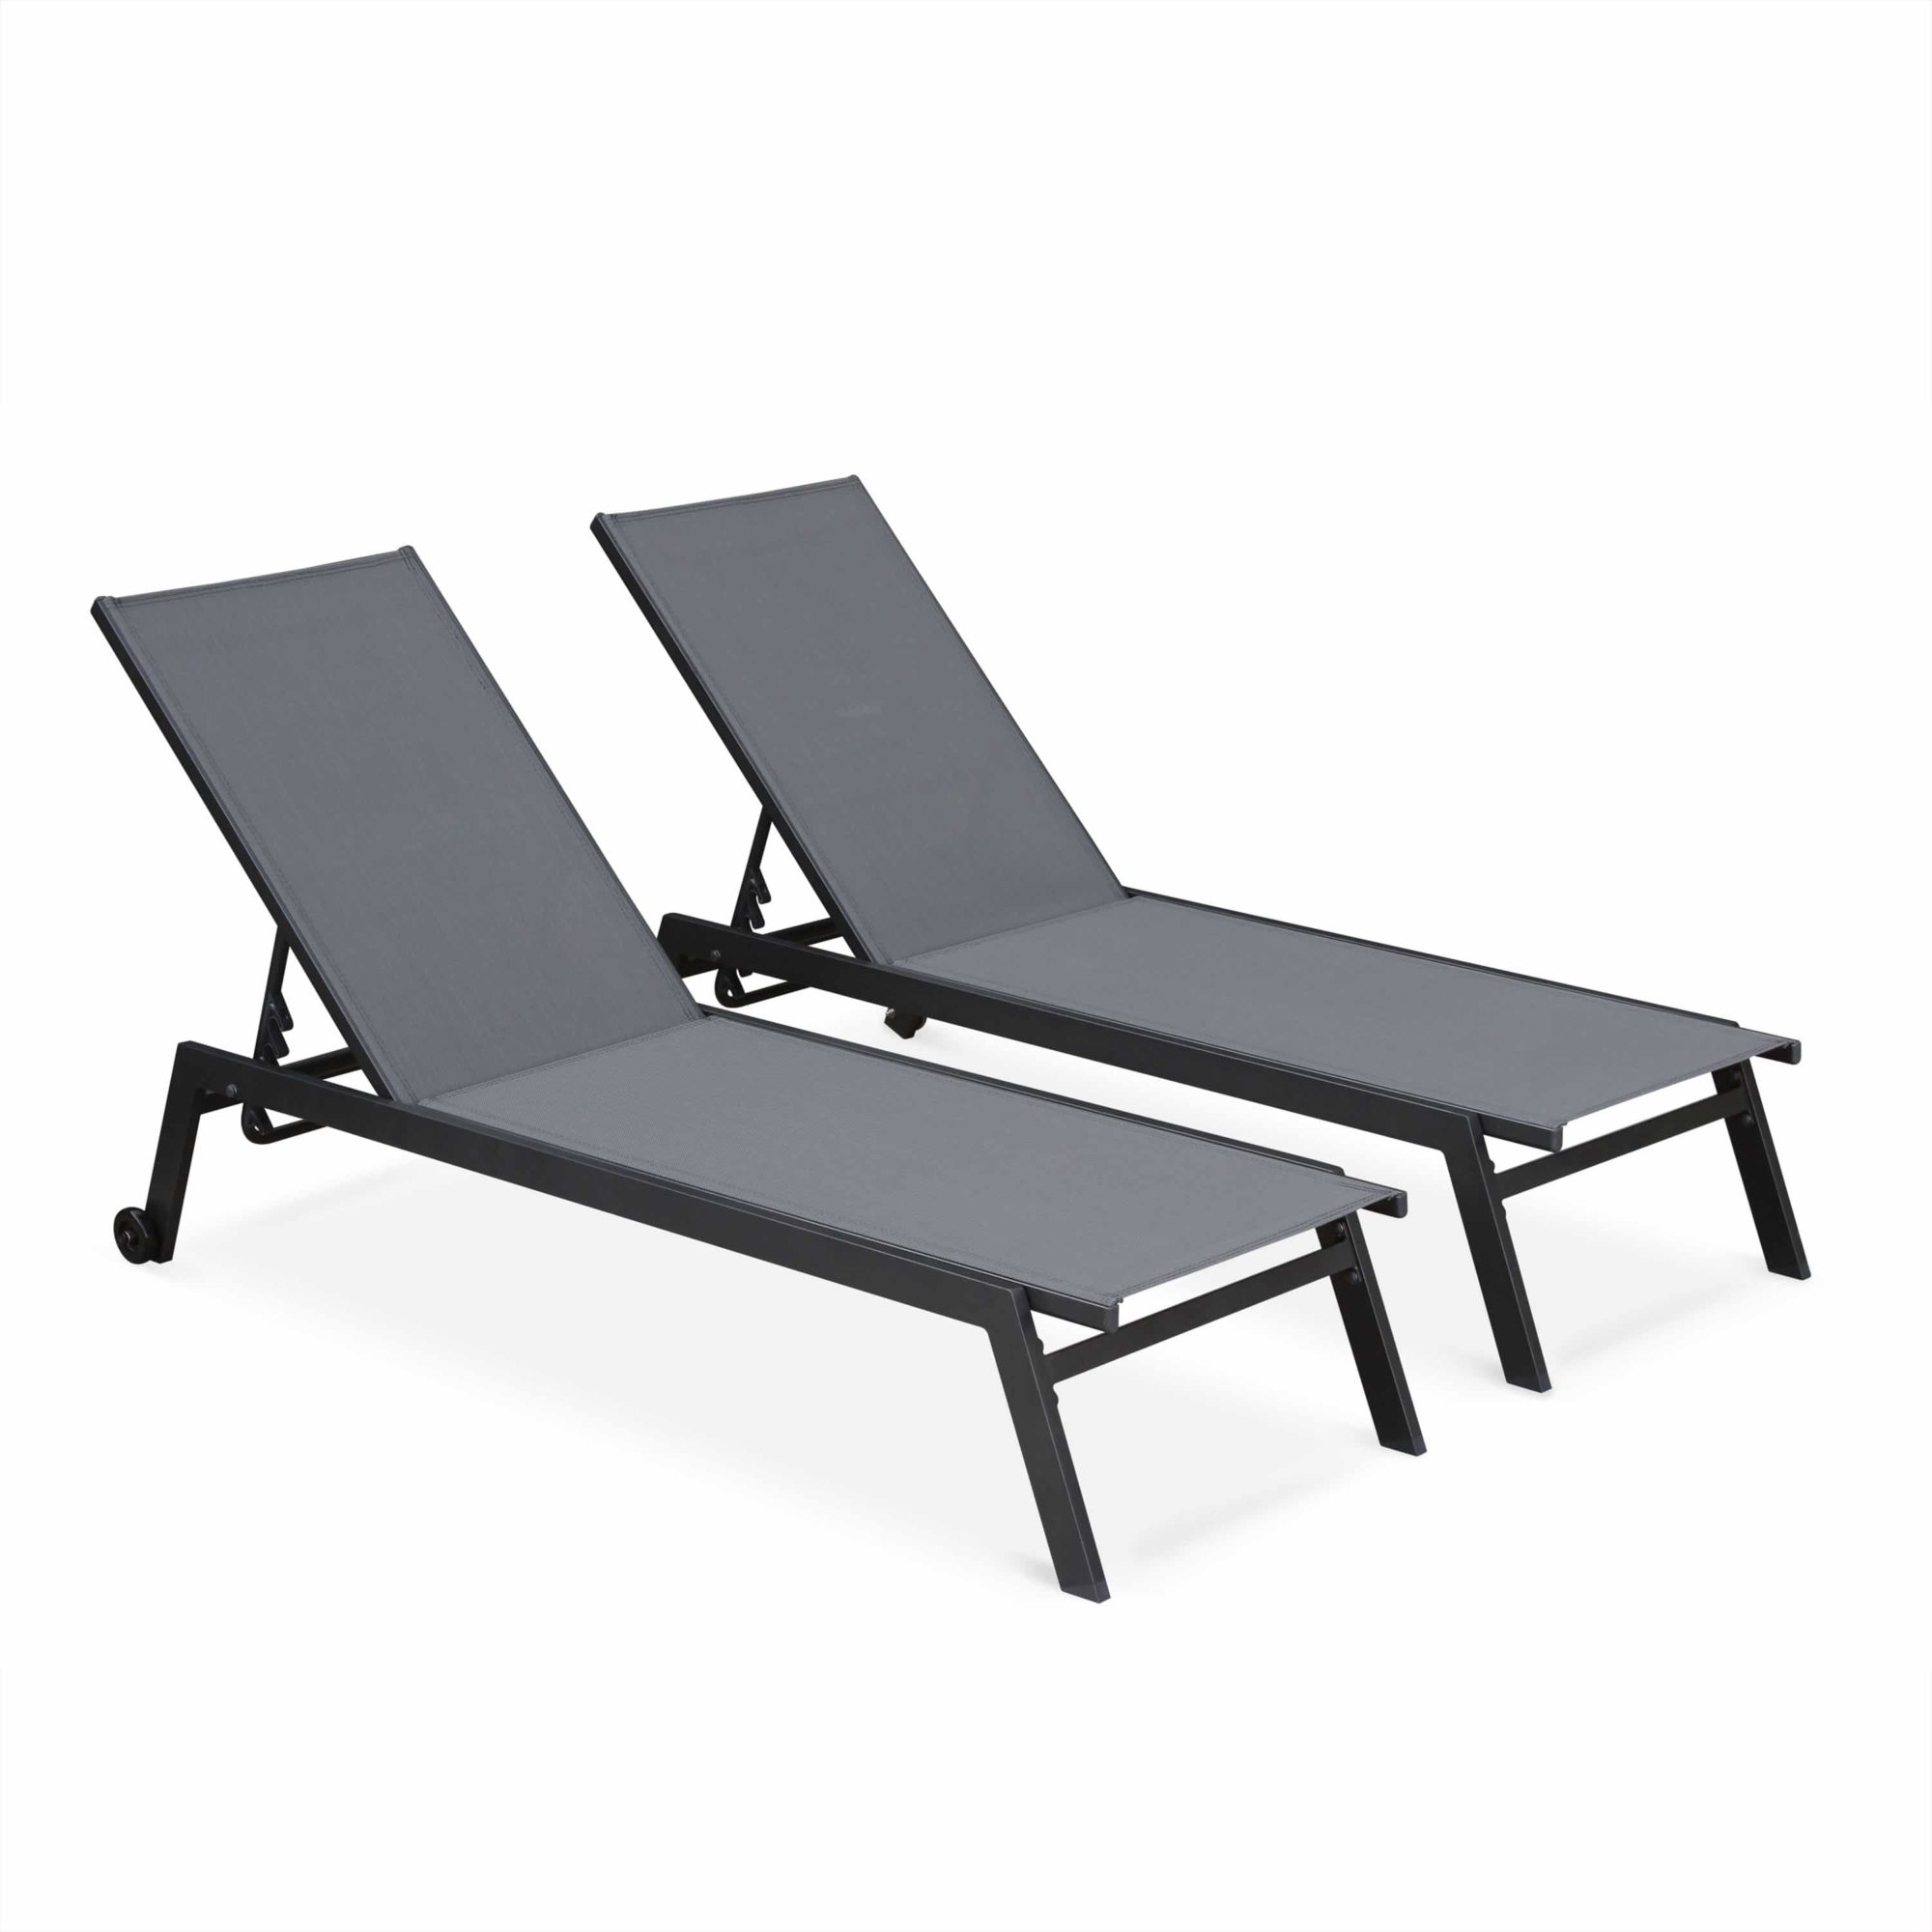 ELSA Set of 2x Aluminium Sun Loungers with wheels